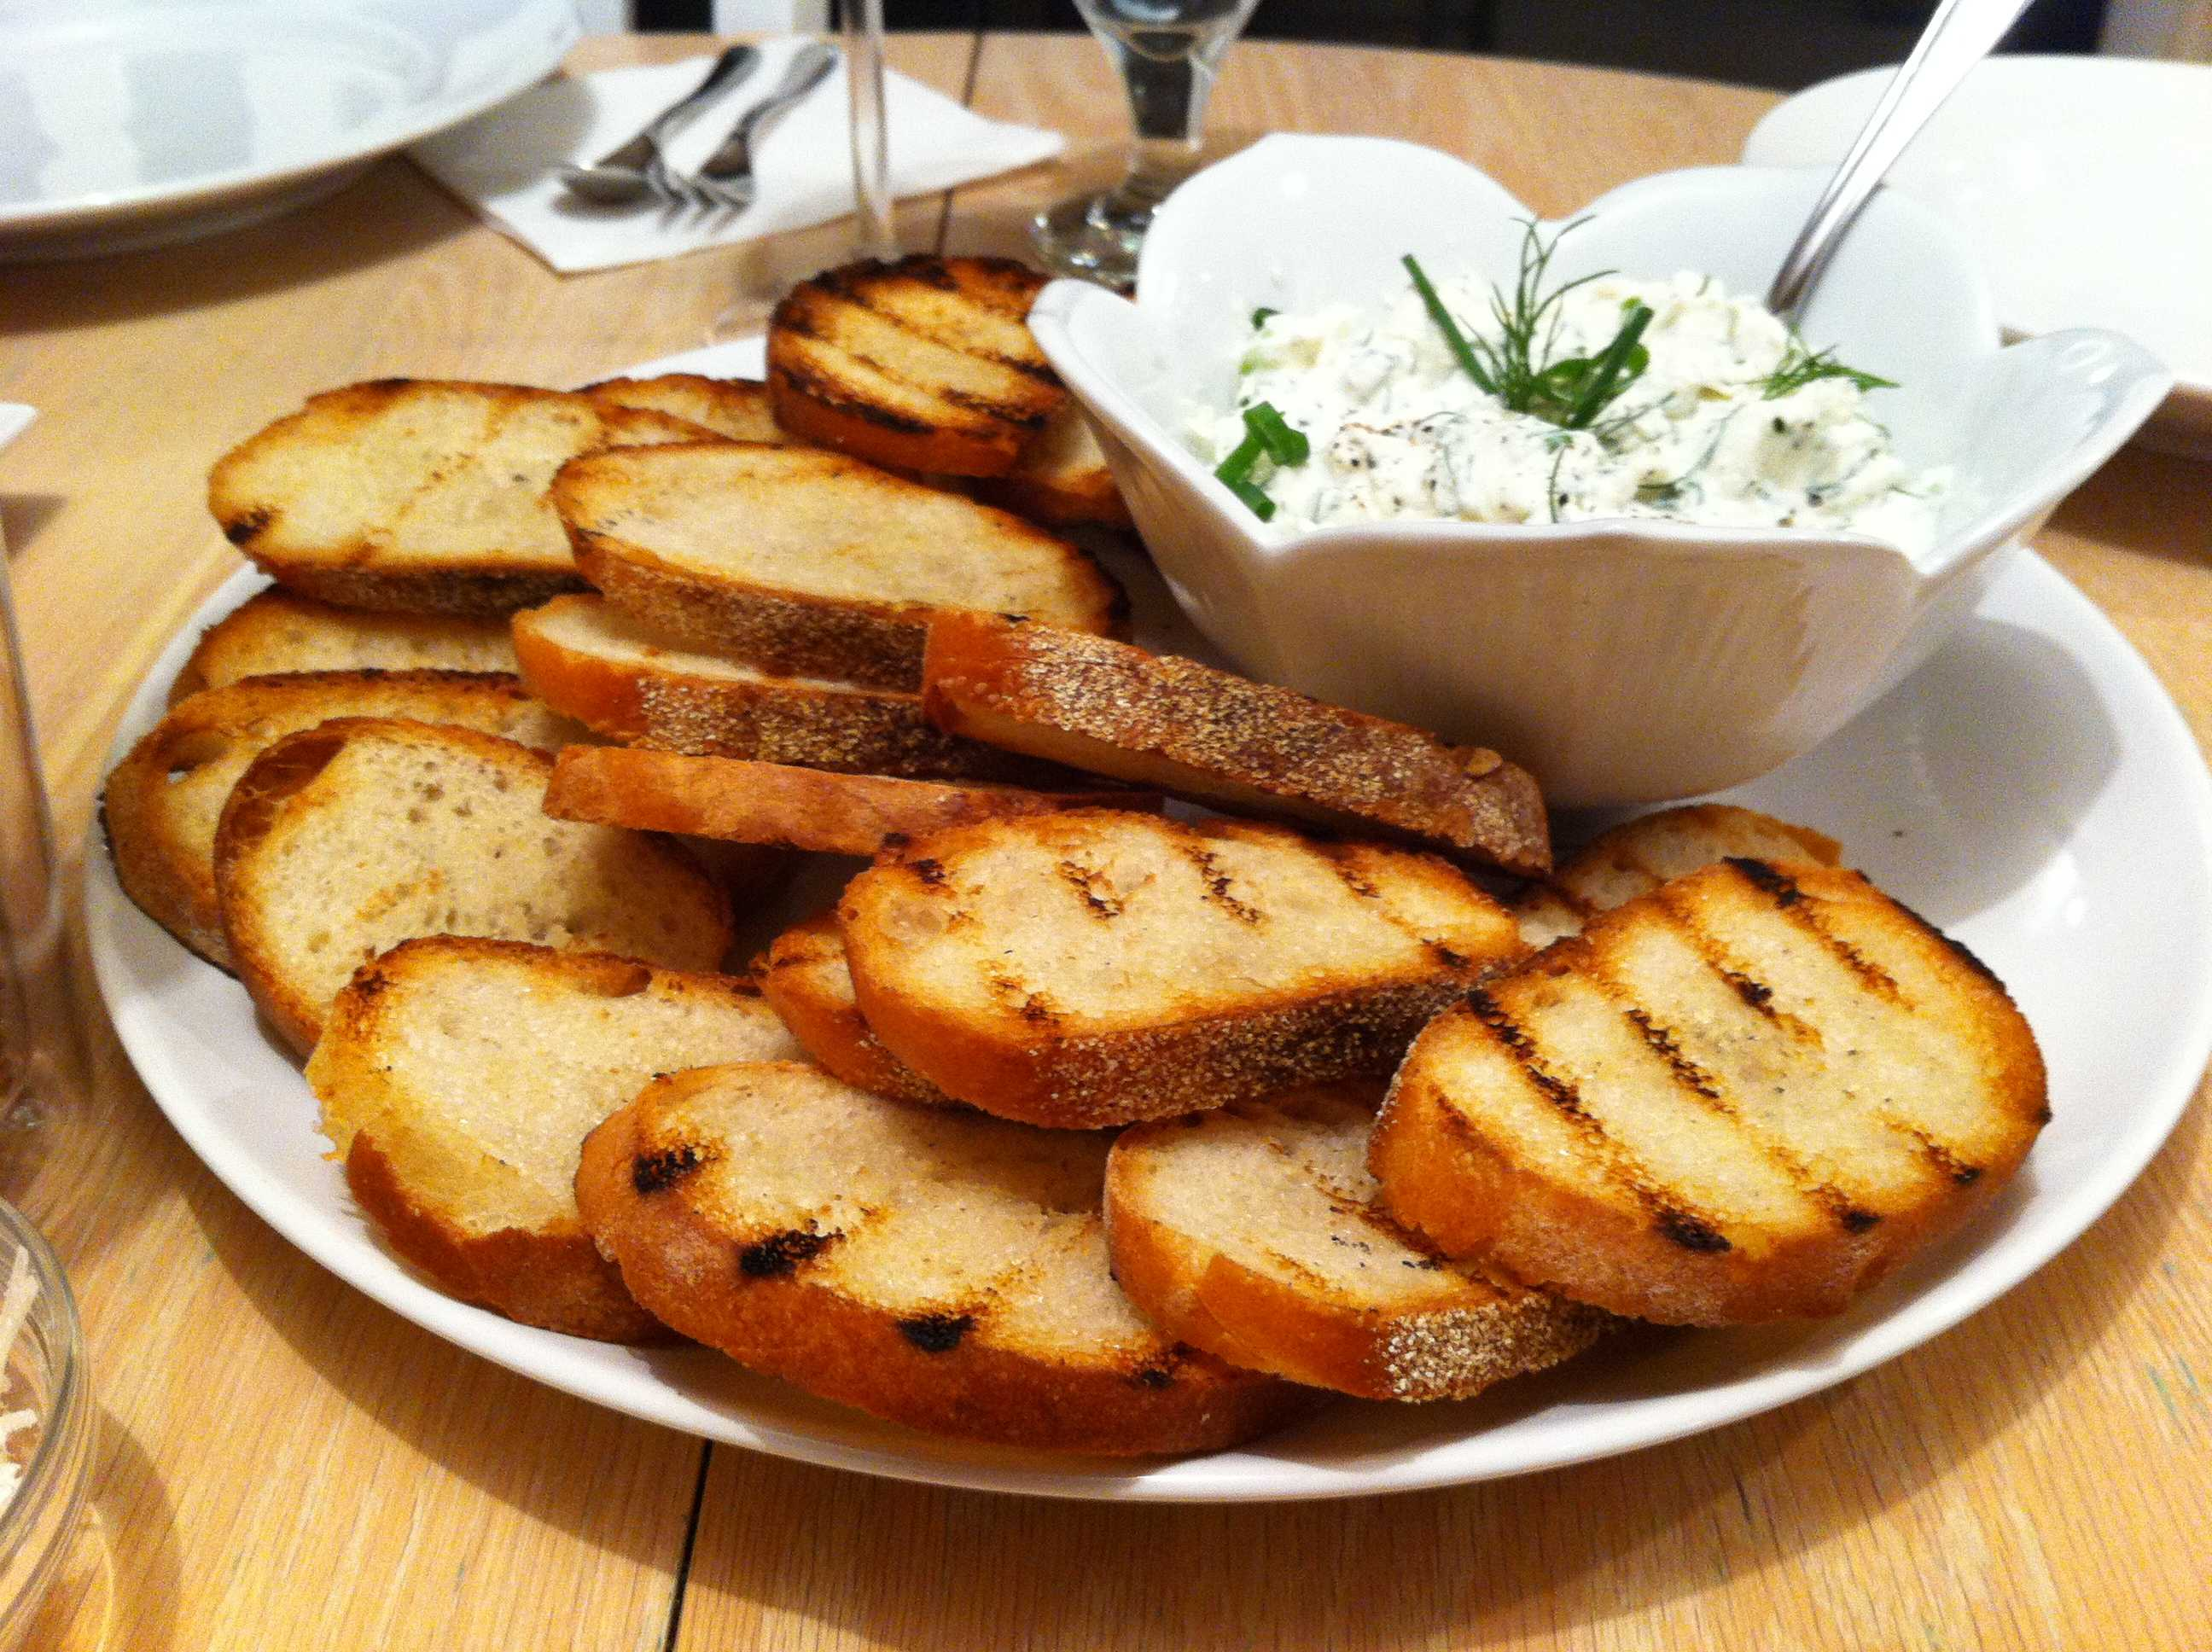 Tuscan Fettunta with an Herb Ricotta